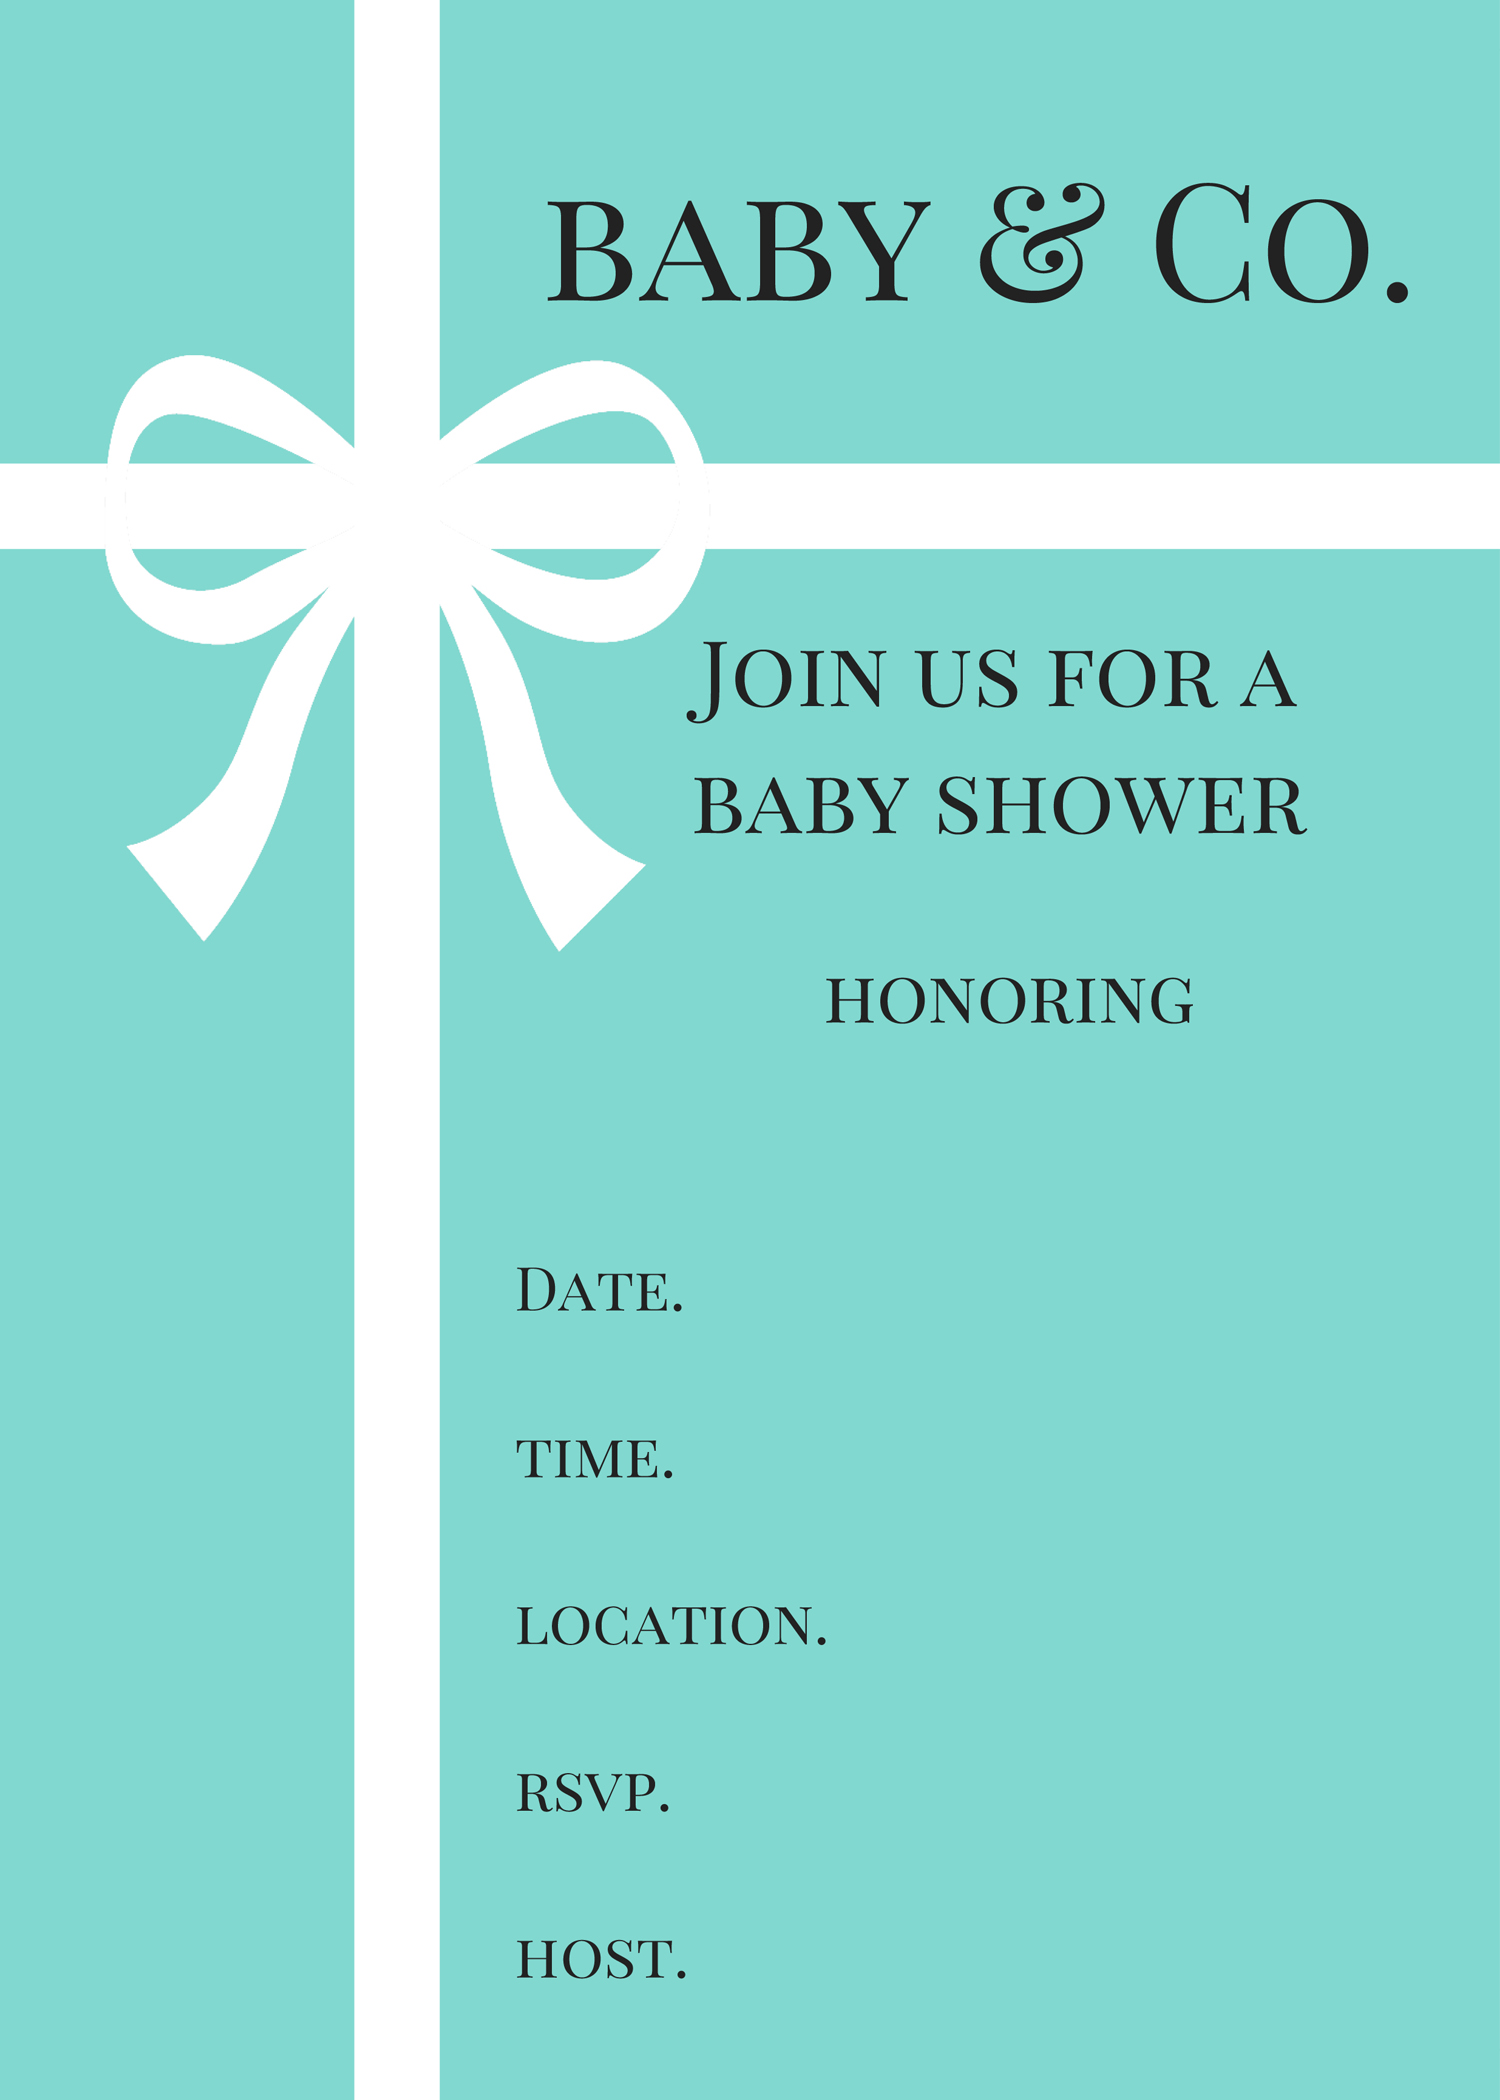 FREE Tiffany Baby Shower Printable - Baby Shower Ideas ...